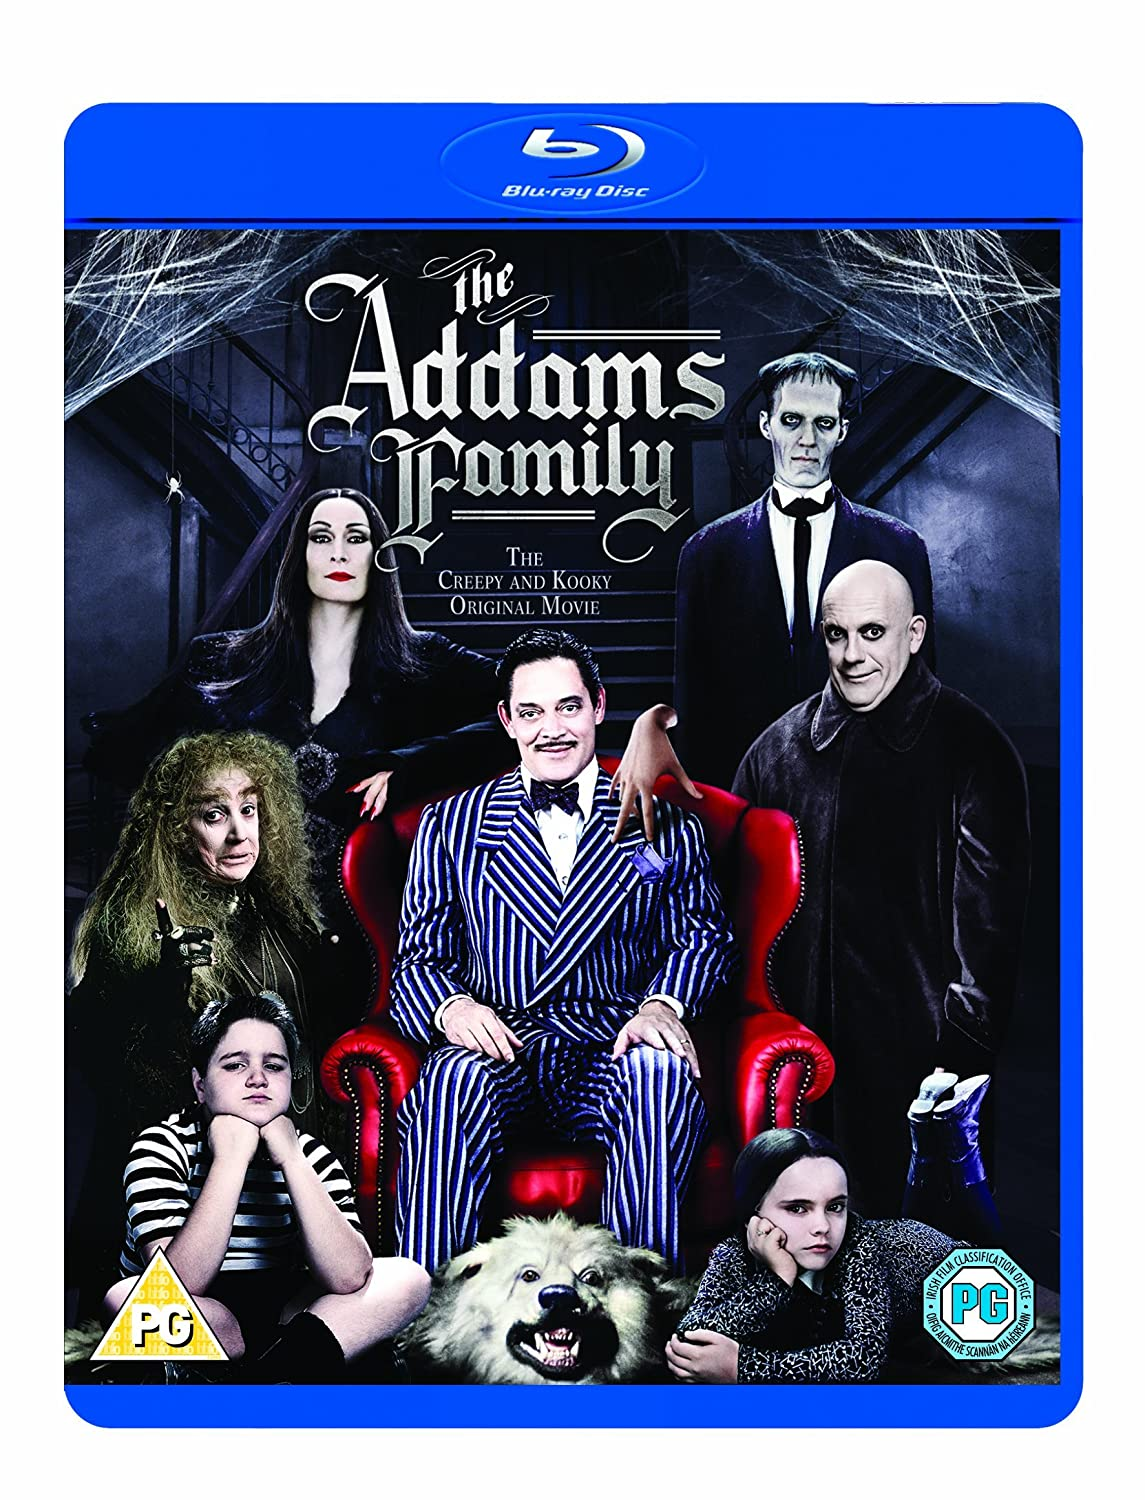 The Addams Family [Blu-ray] [1991] [Reino Unido]: Amazon.es ...